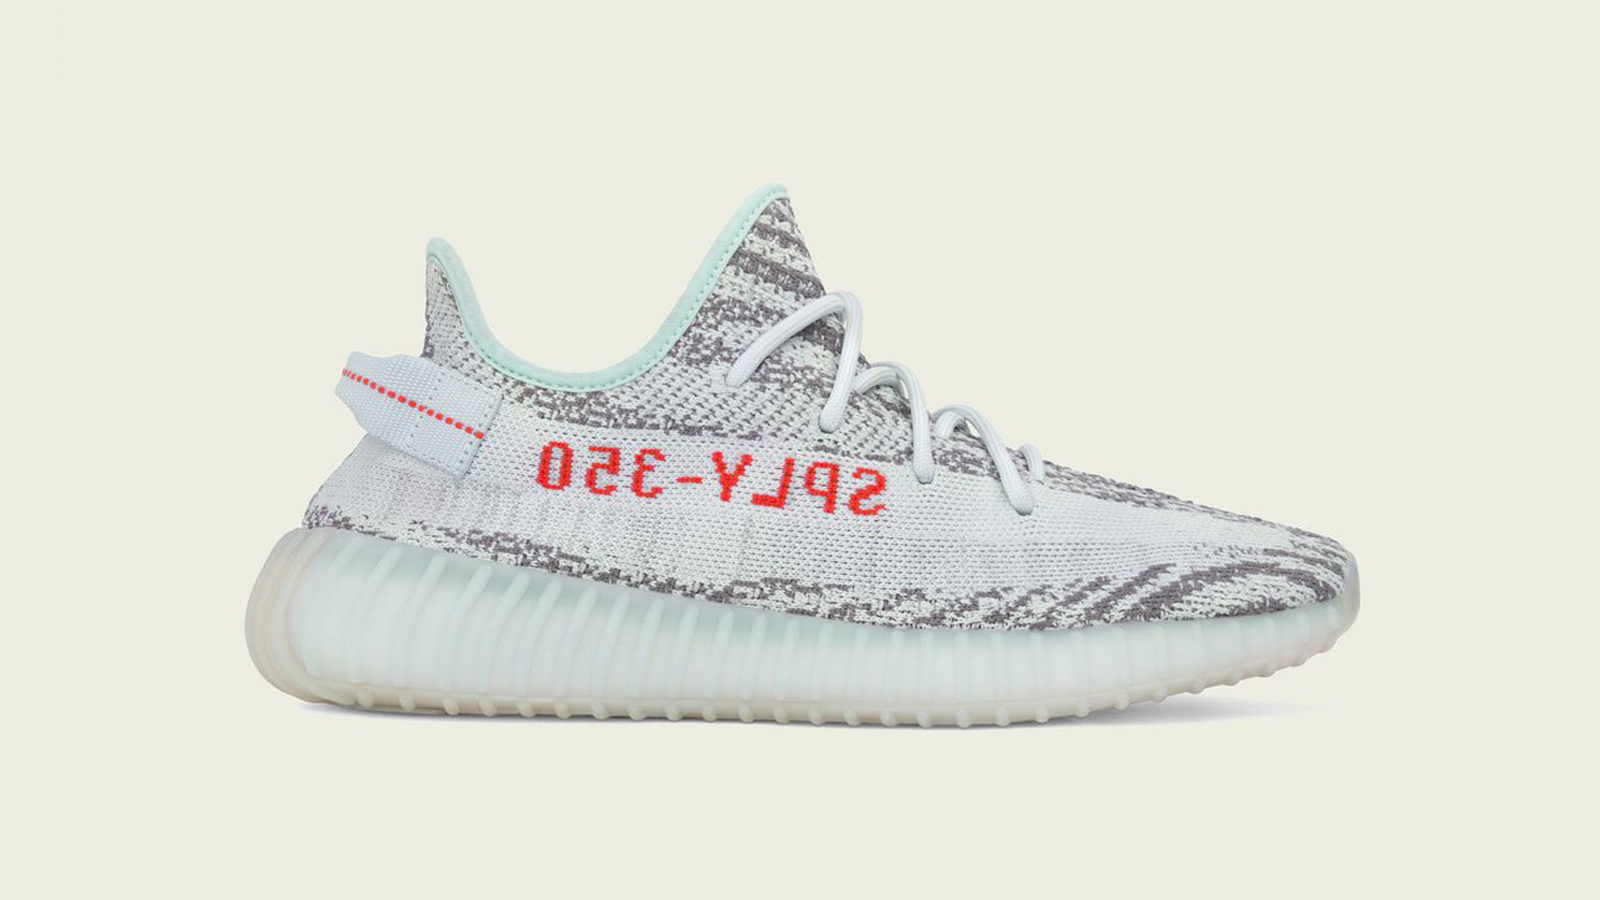 """adidas Yeezy Boost 350 V2 """"Blue Tint"""": Release Date, Price & More Info"""